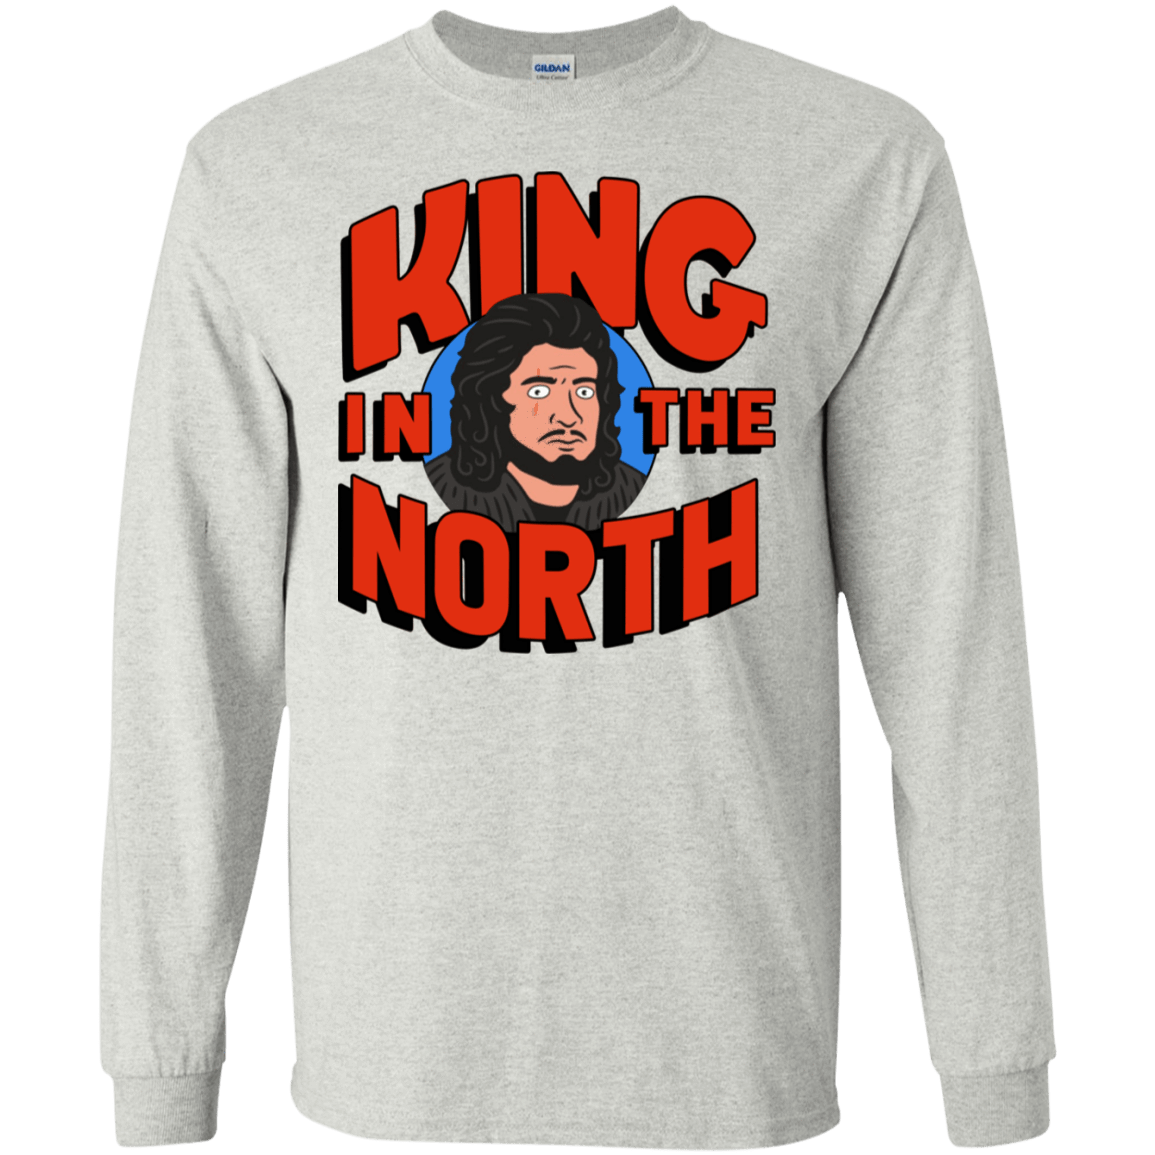 King In The North 30-2112-73154812-10754 - Tee Ript